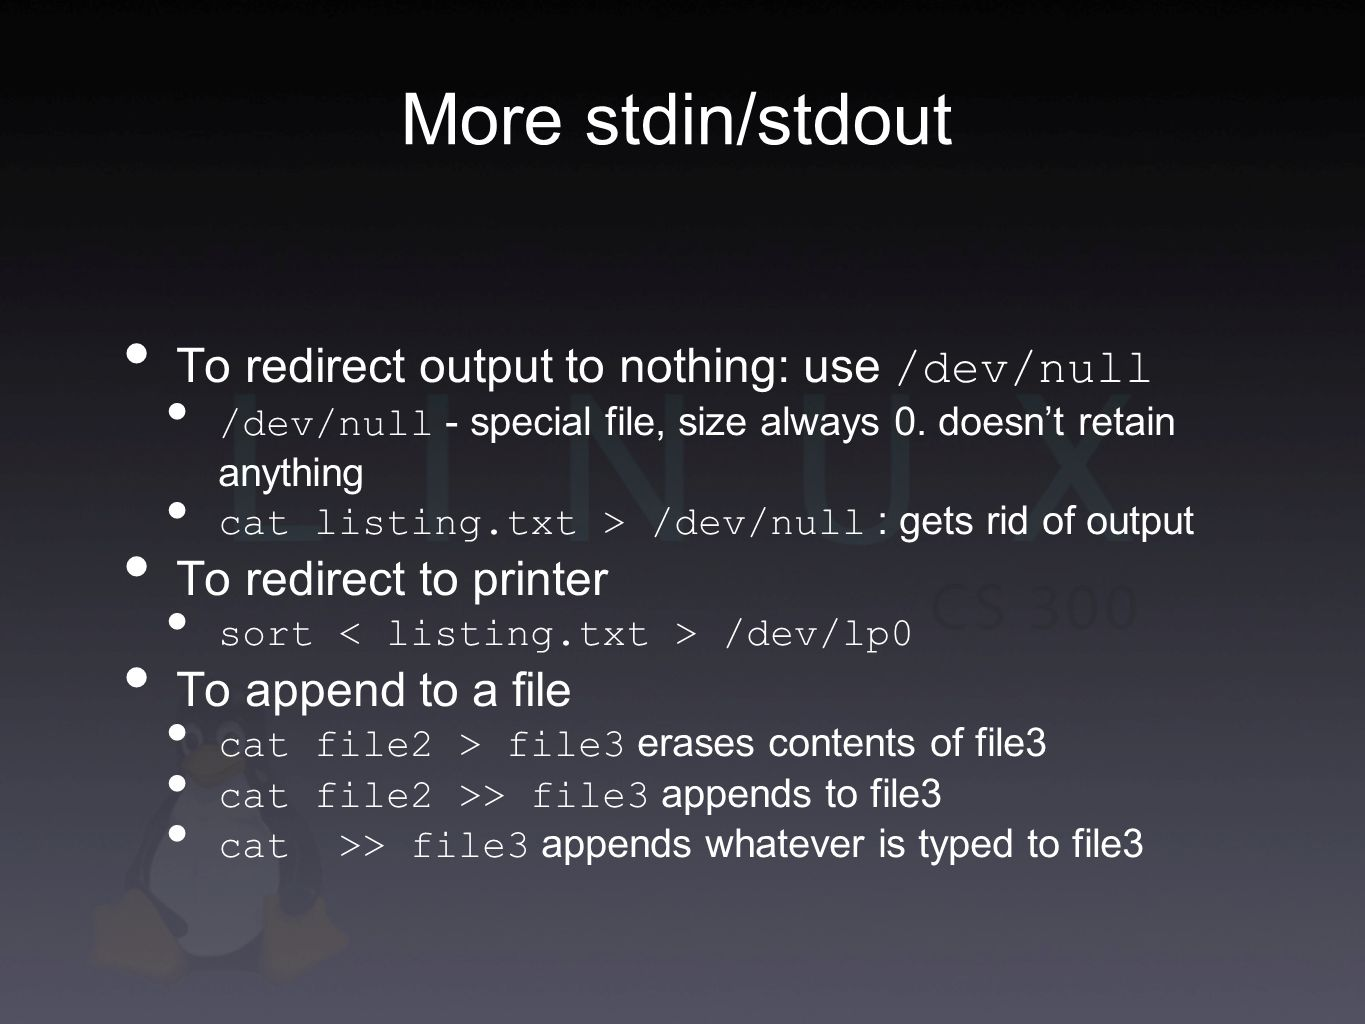 More stdin/stdout To redirect output to nothing: use /dev/null - special file, size always 0.